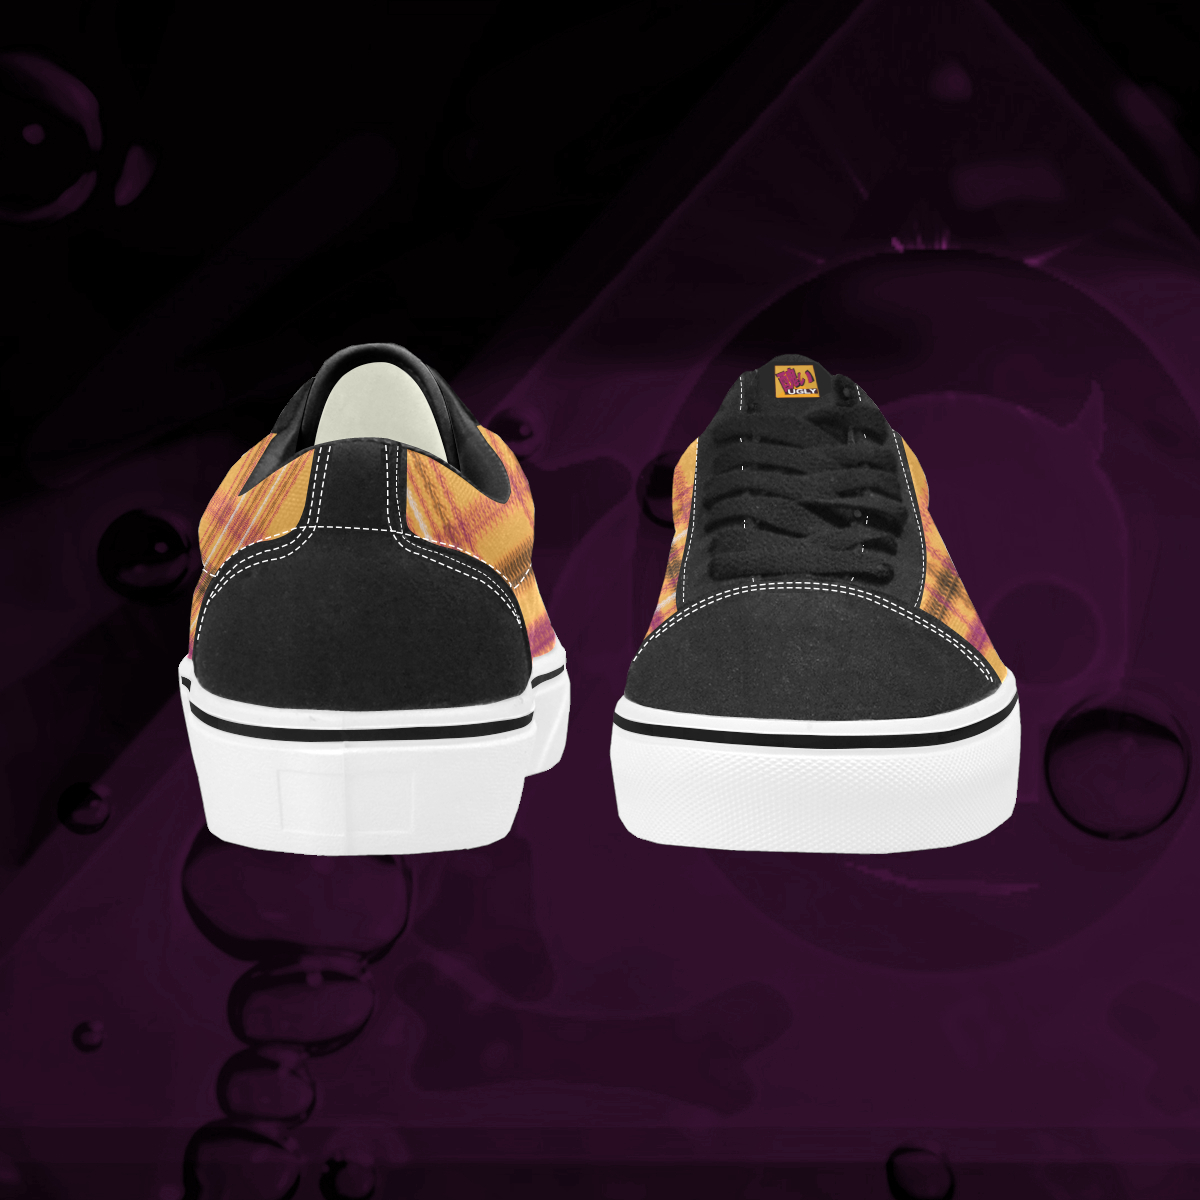 UGLY tartan low top skate shoes The Lowest of Low Tang